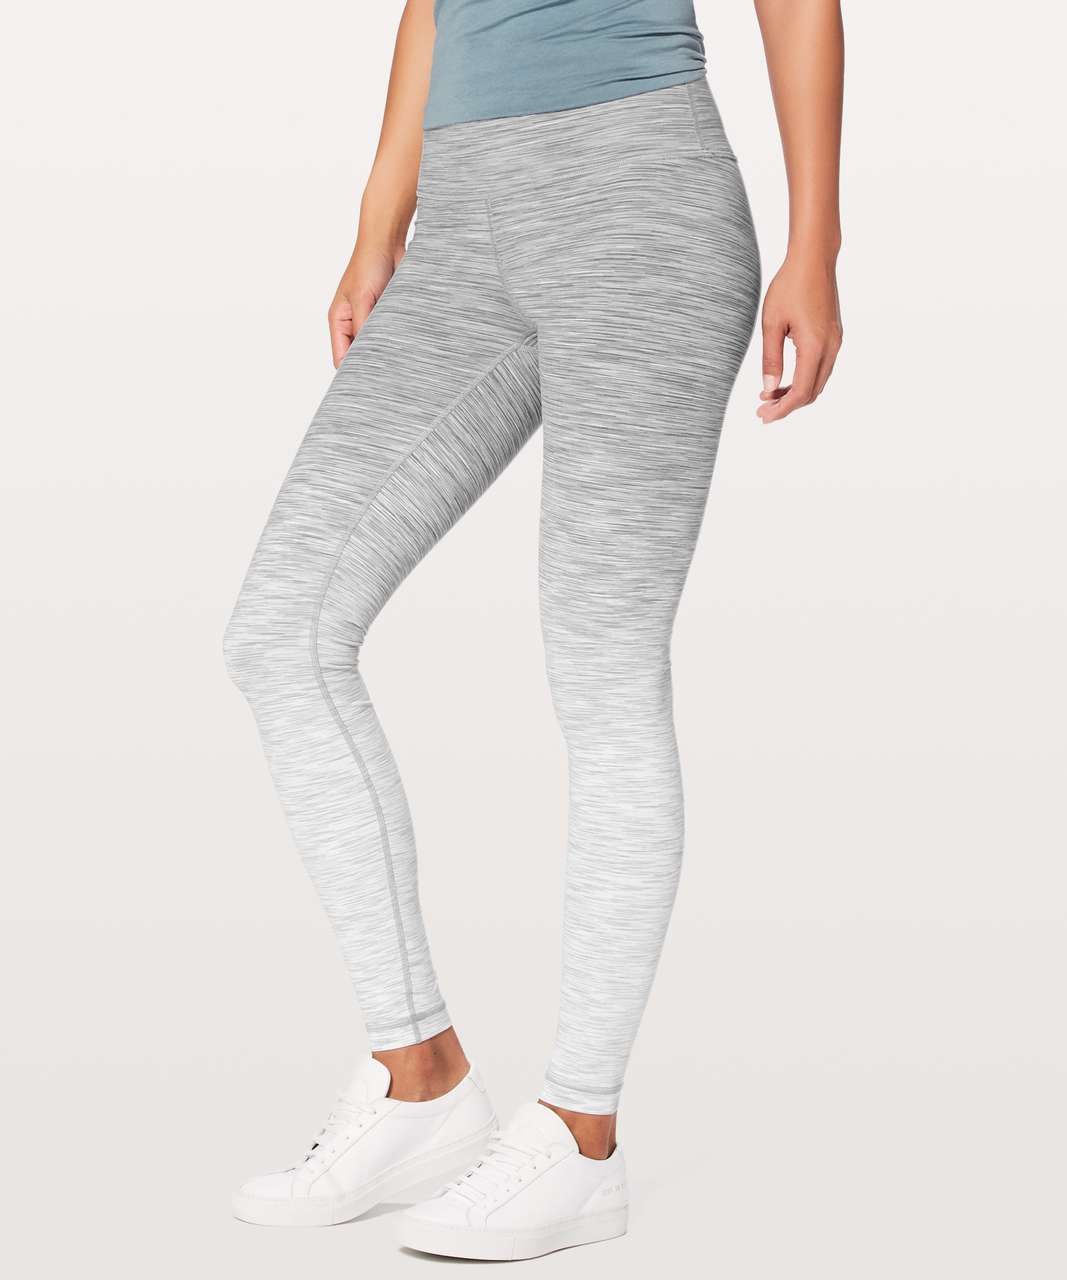 "Lululemon Wunder Under Hi-Rise Tight (Ombre Melange) *Full-On Luon 28"" - Ombre Melange Space Dye WUHR White Multi"